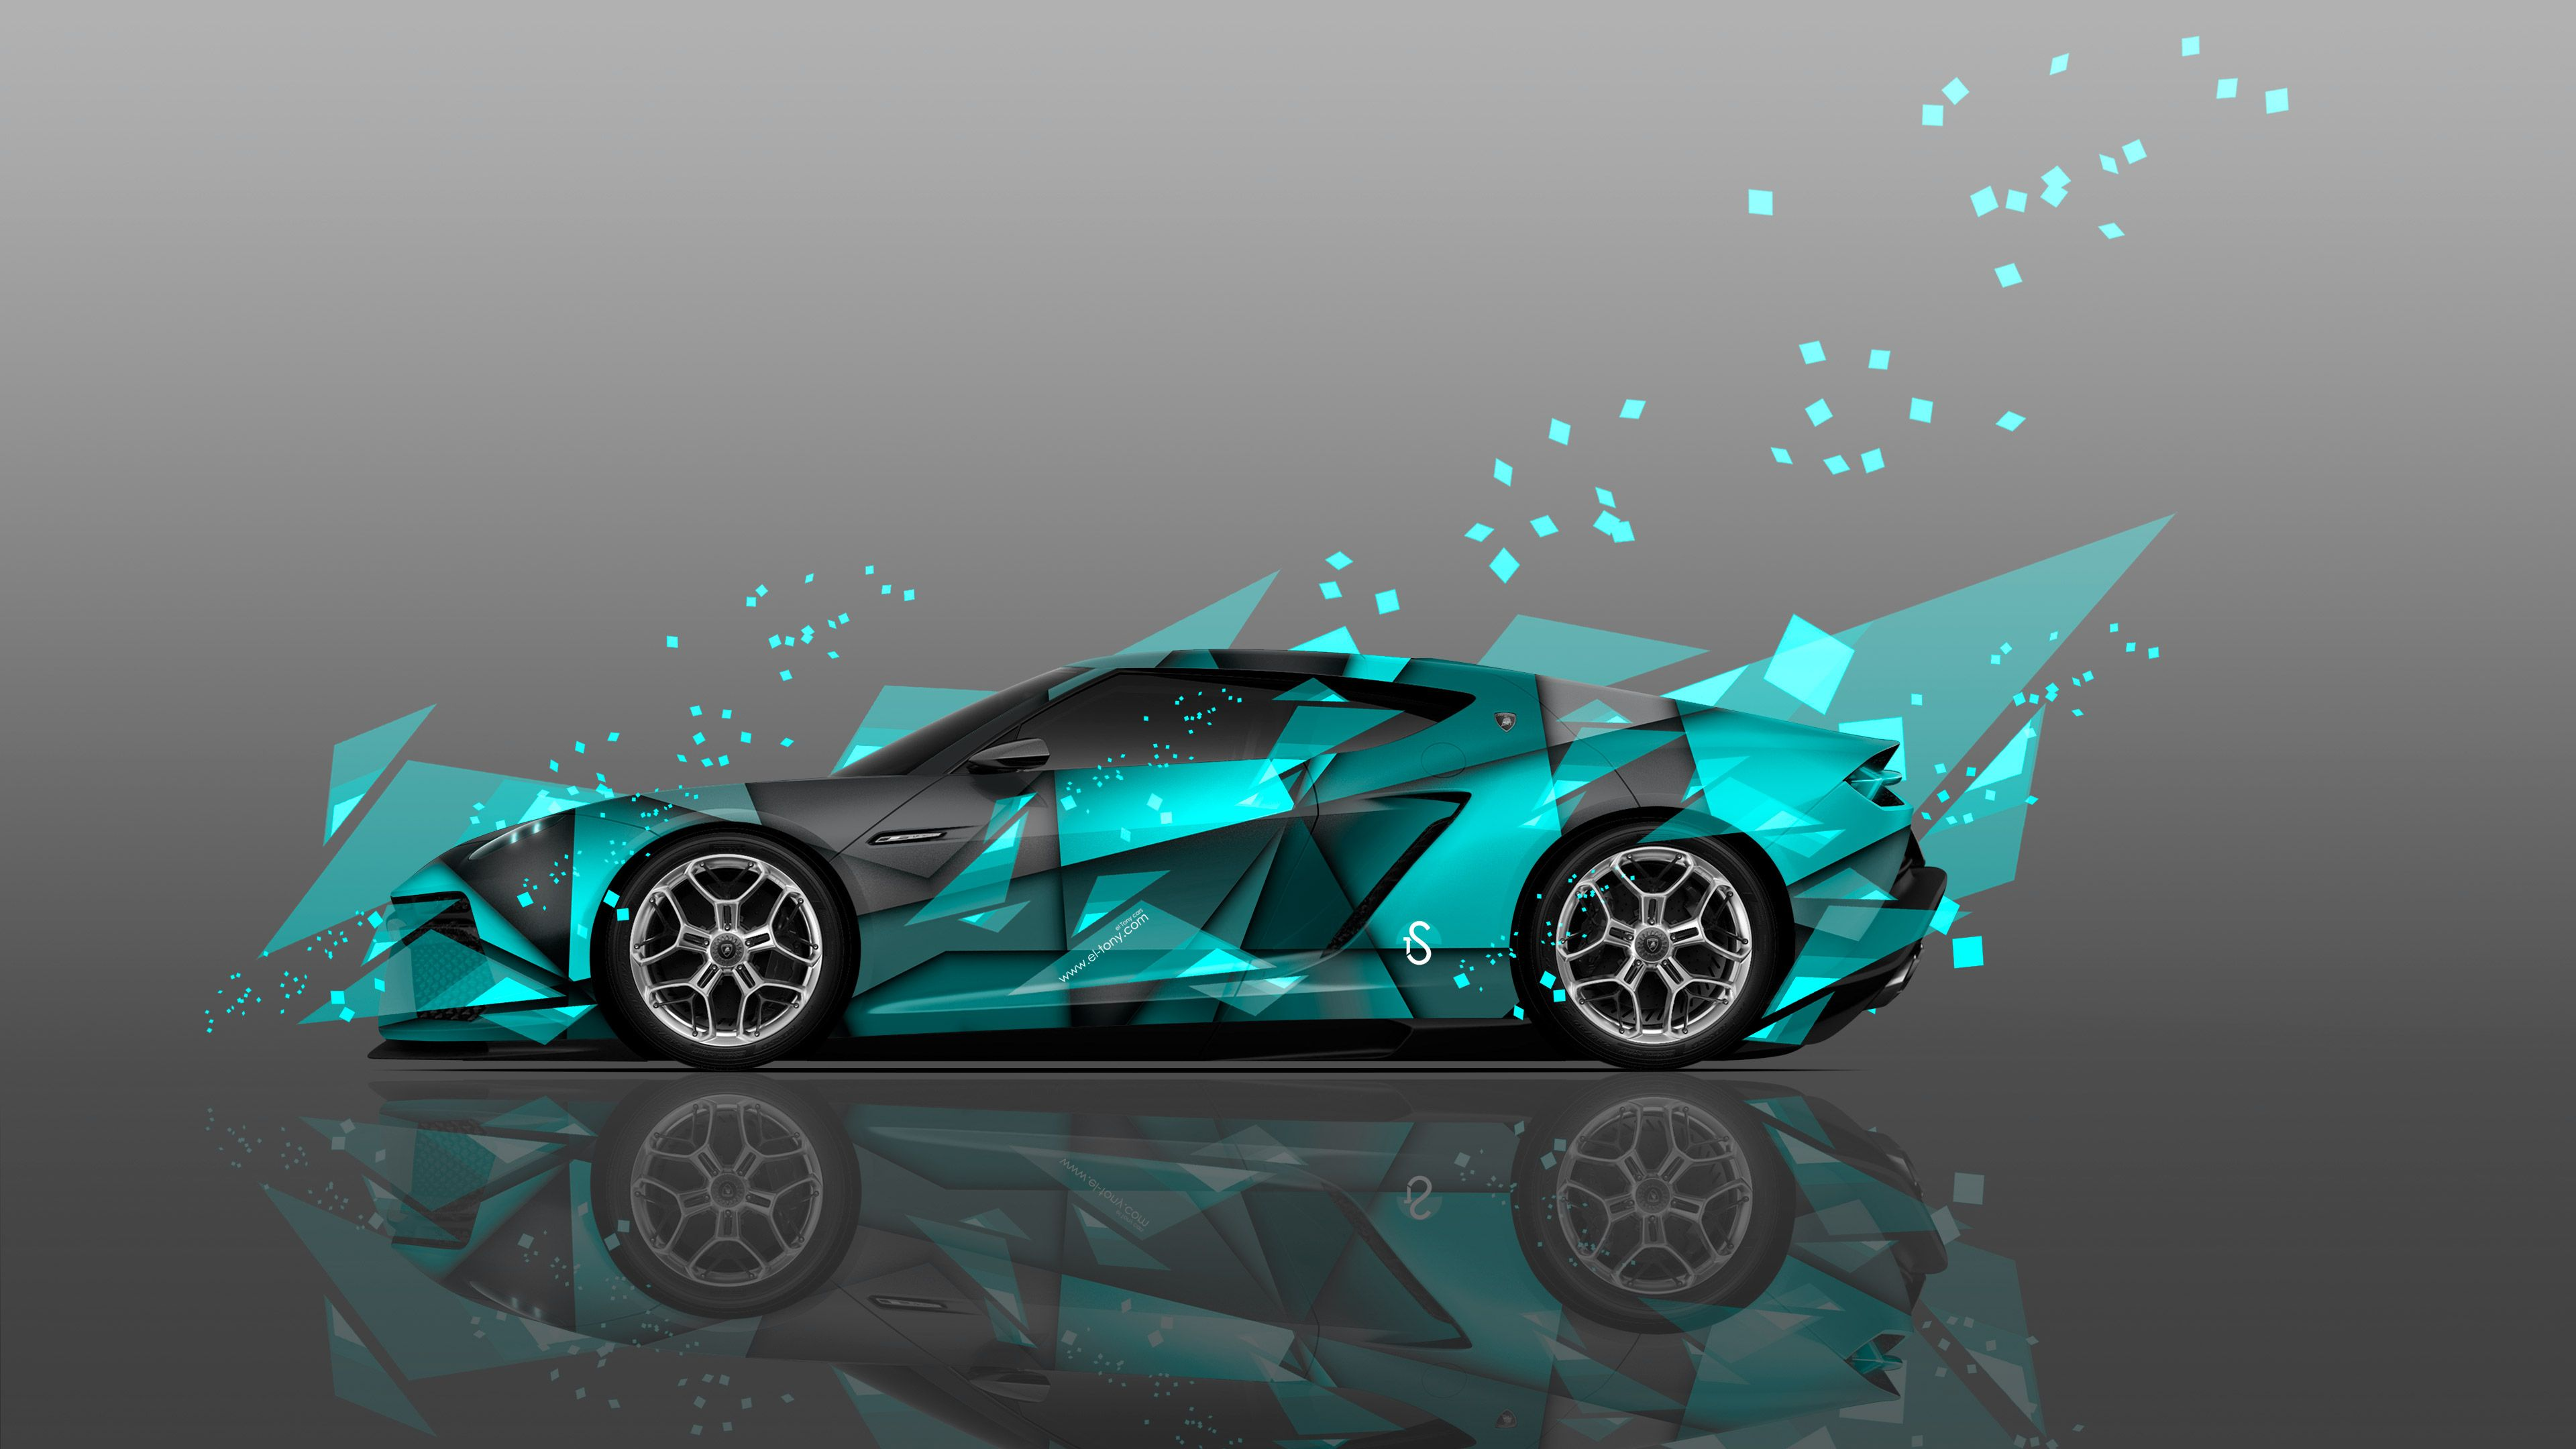 Incroyable Lamborghini Asterion Side Abstract Aerography Car Design By Tony